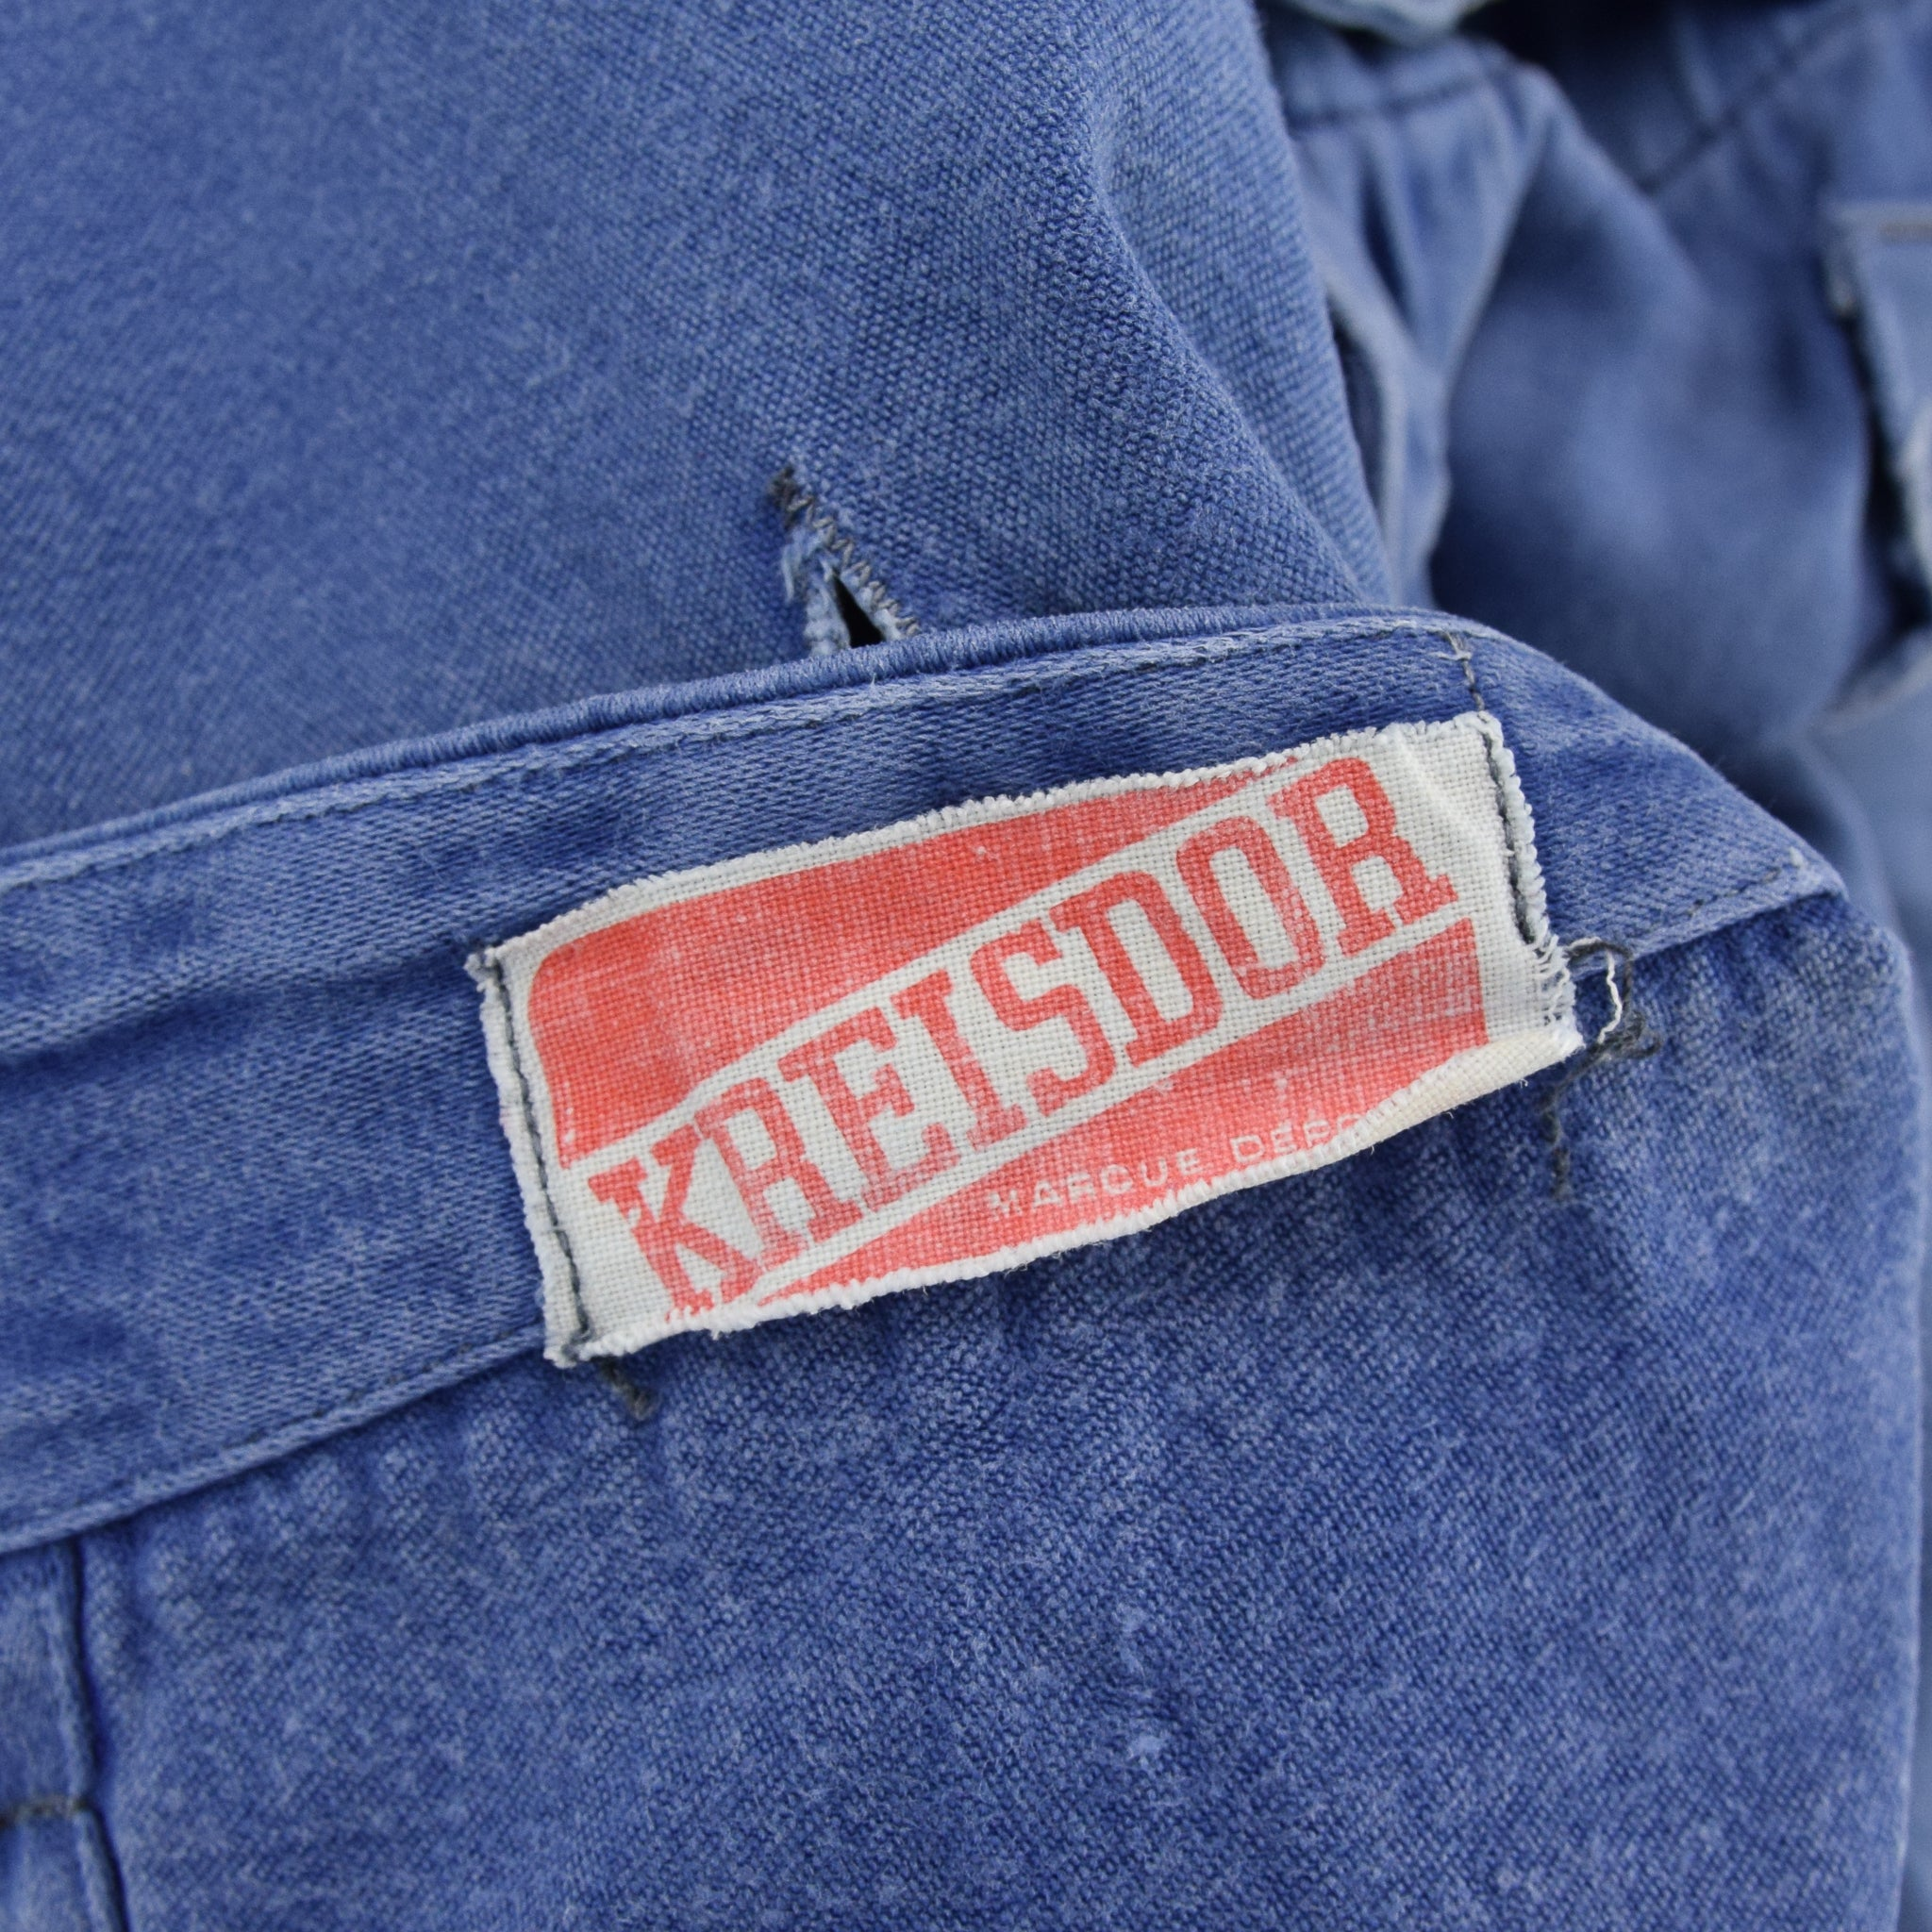 Vintage Distressed Blue French Moleskin Workwear Dungarees Trousers S / M label